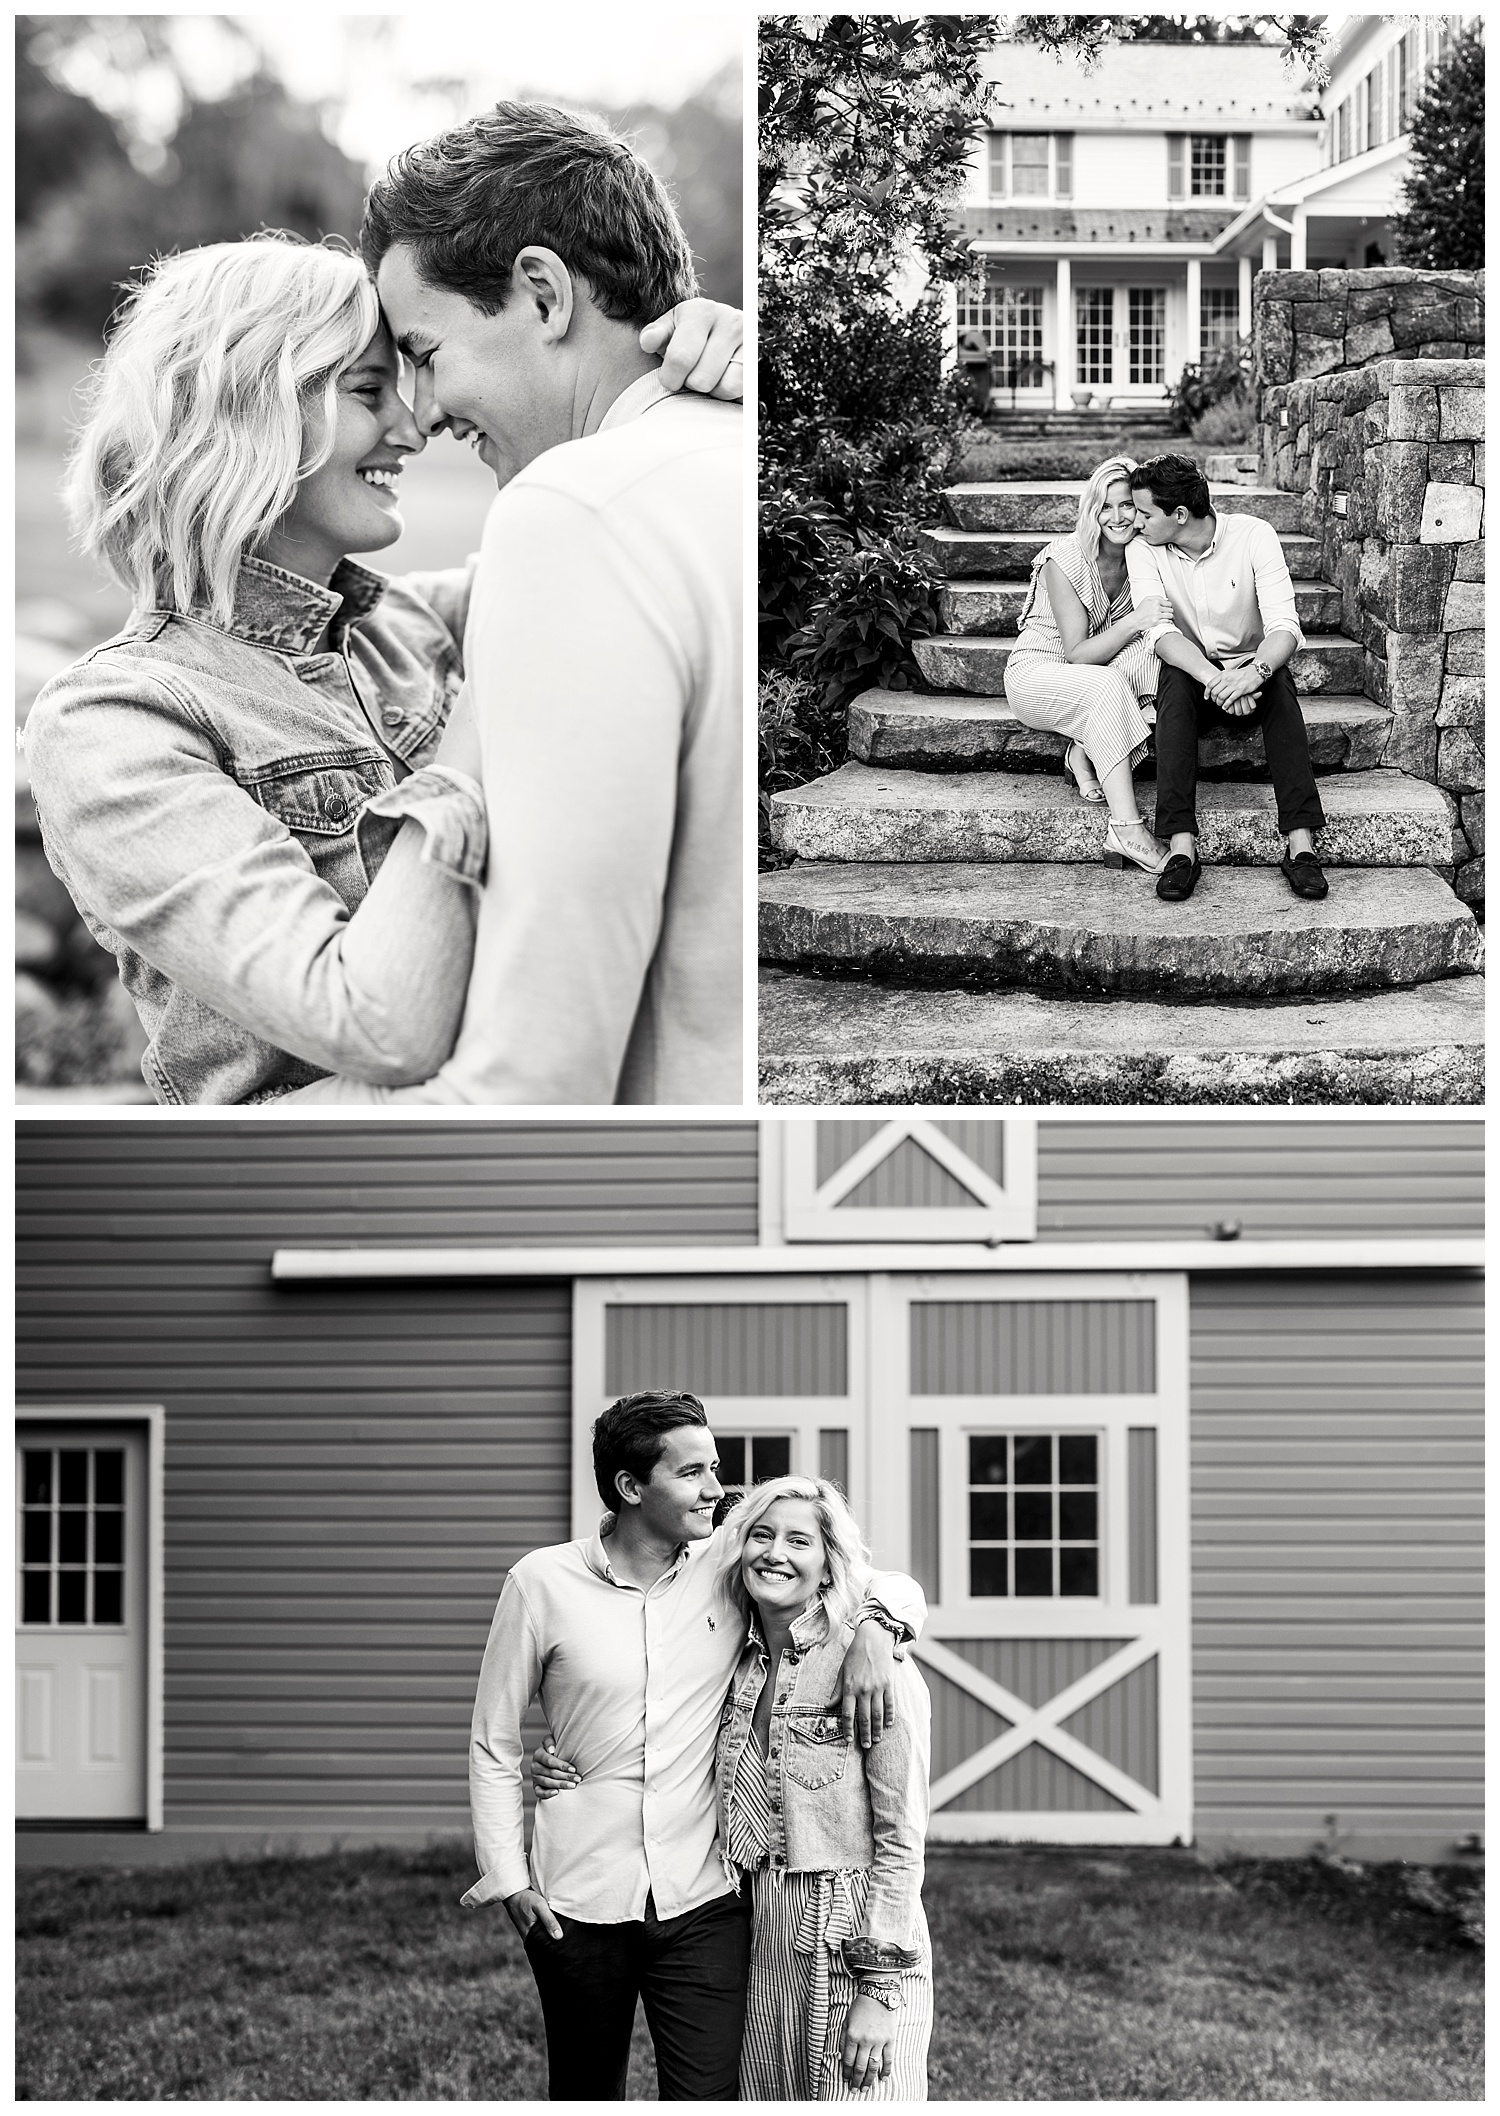 Hunterdon_County_Engagement_Session_Apollo_Fields97.jpg